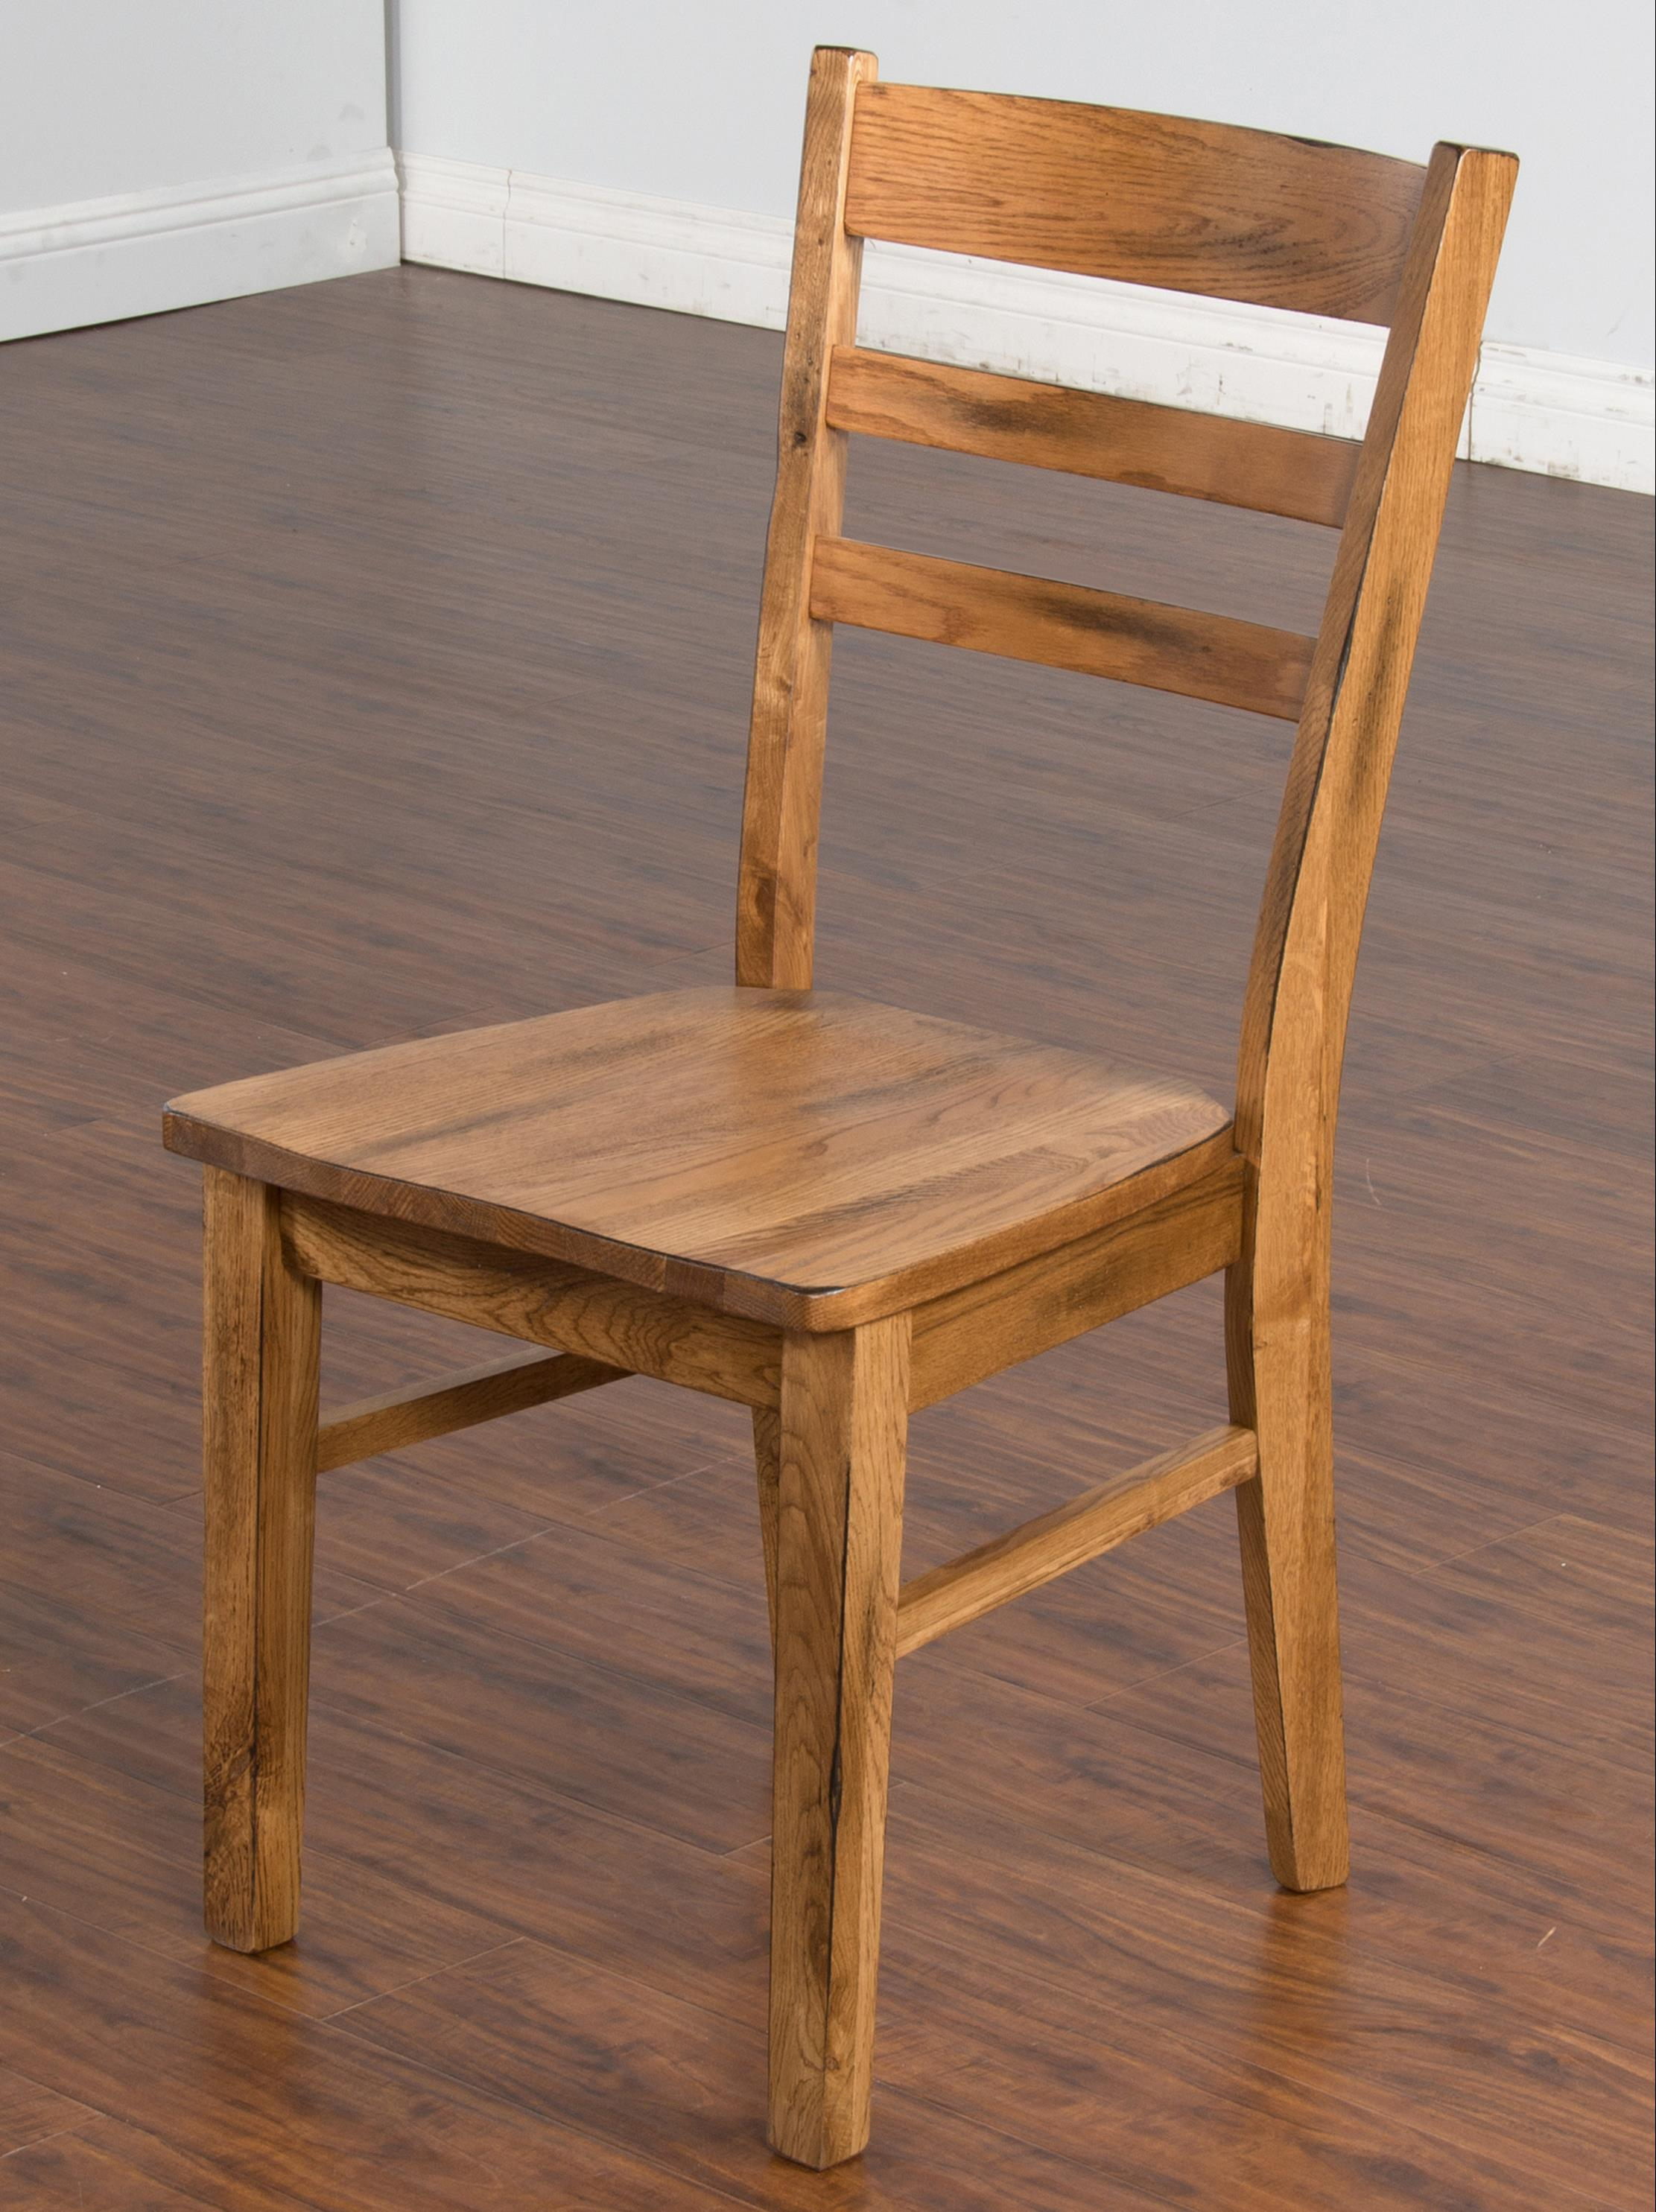 Sunny Designs Sedona Ladderback Chair - Item Number: 1616RO